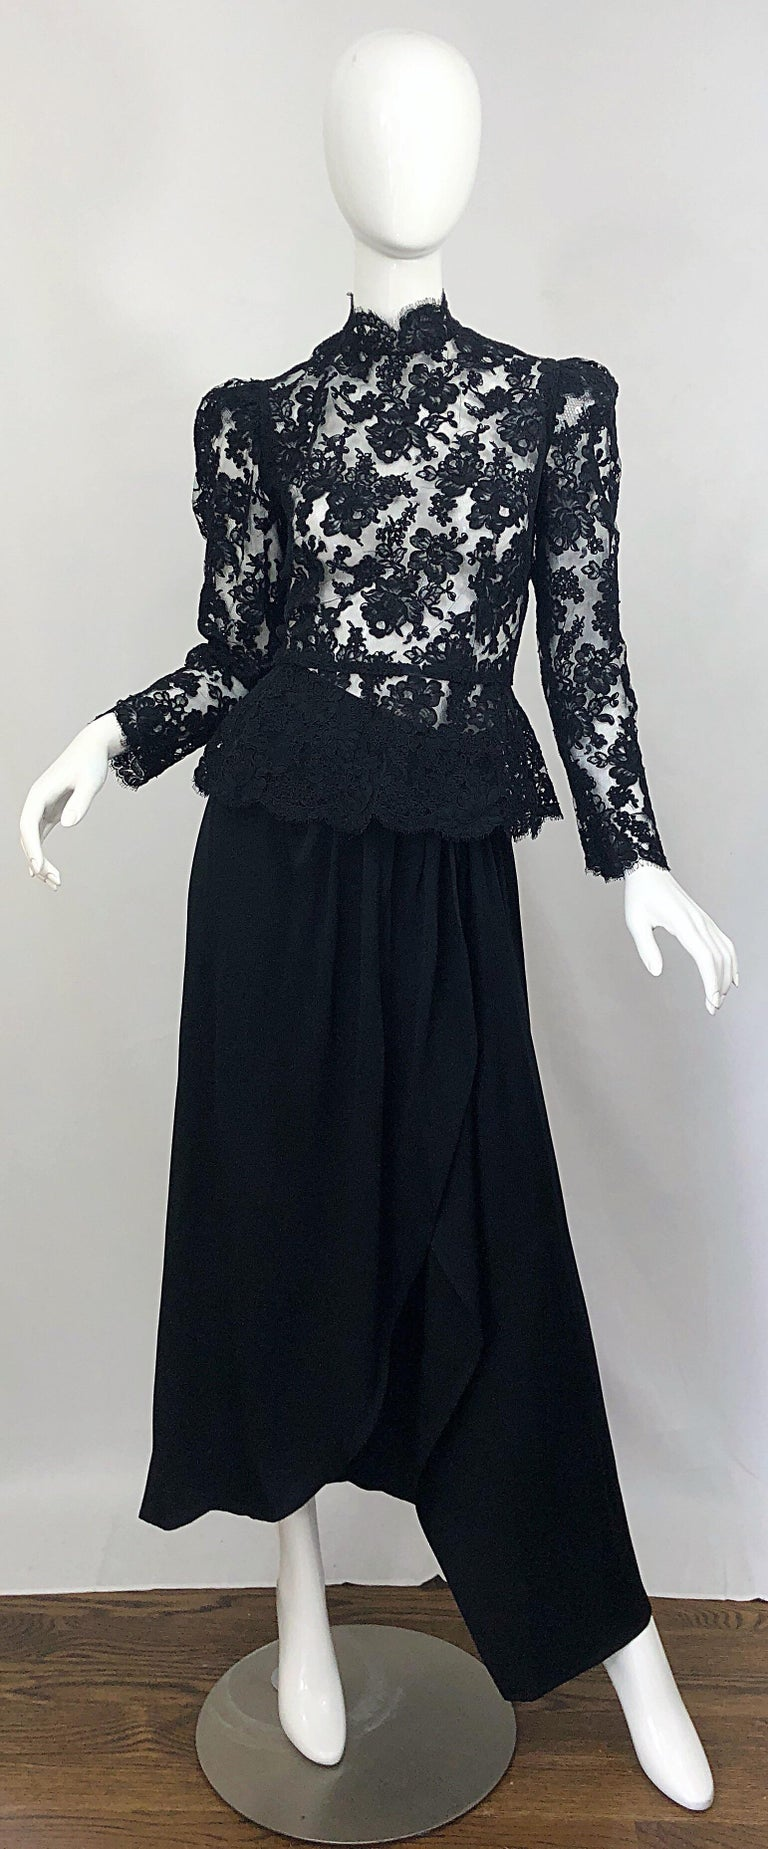 Vintage Vicky Tiel Couture 1980s Black Lace Victorian Top + Asymmetrical Skirt For Sale 10